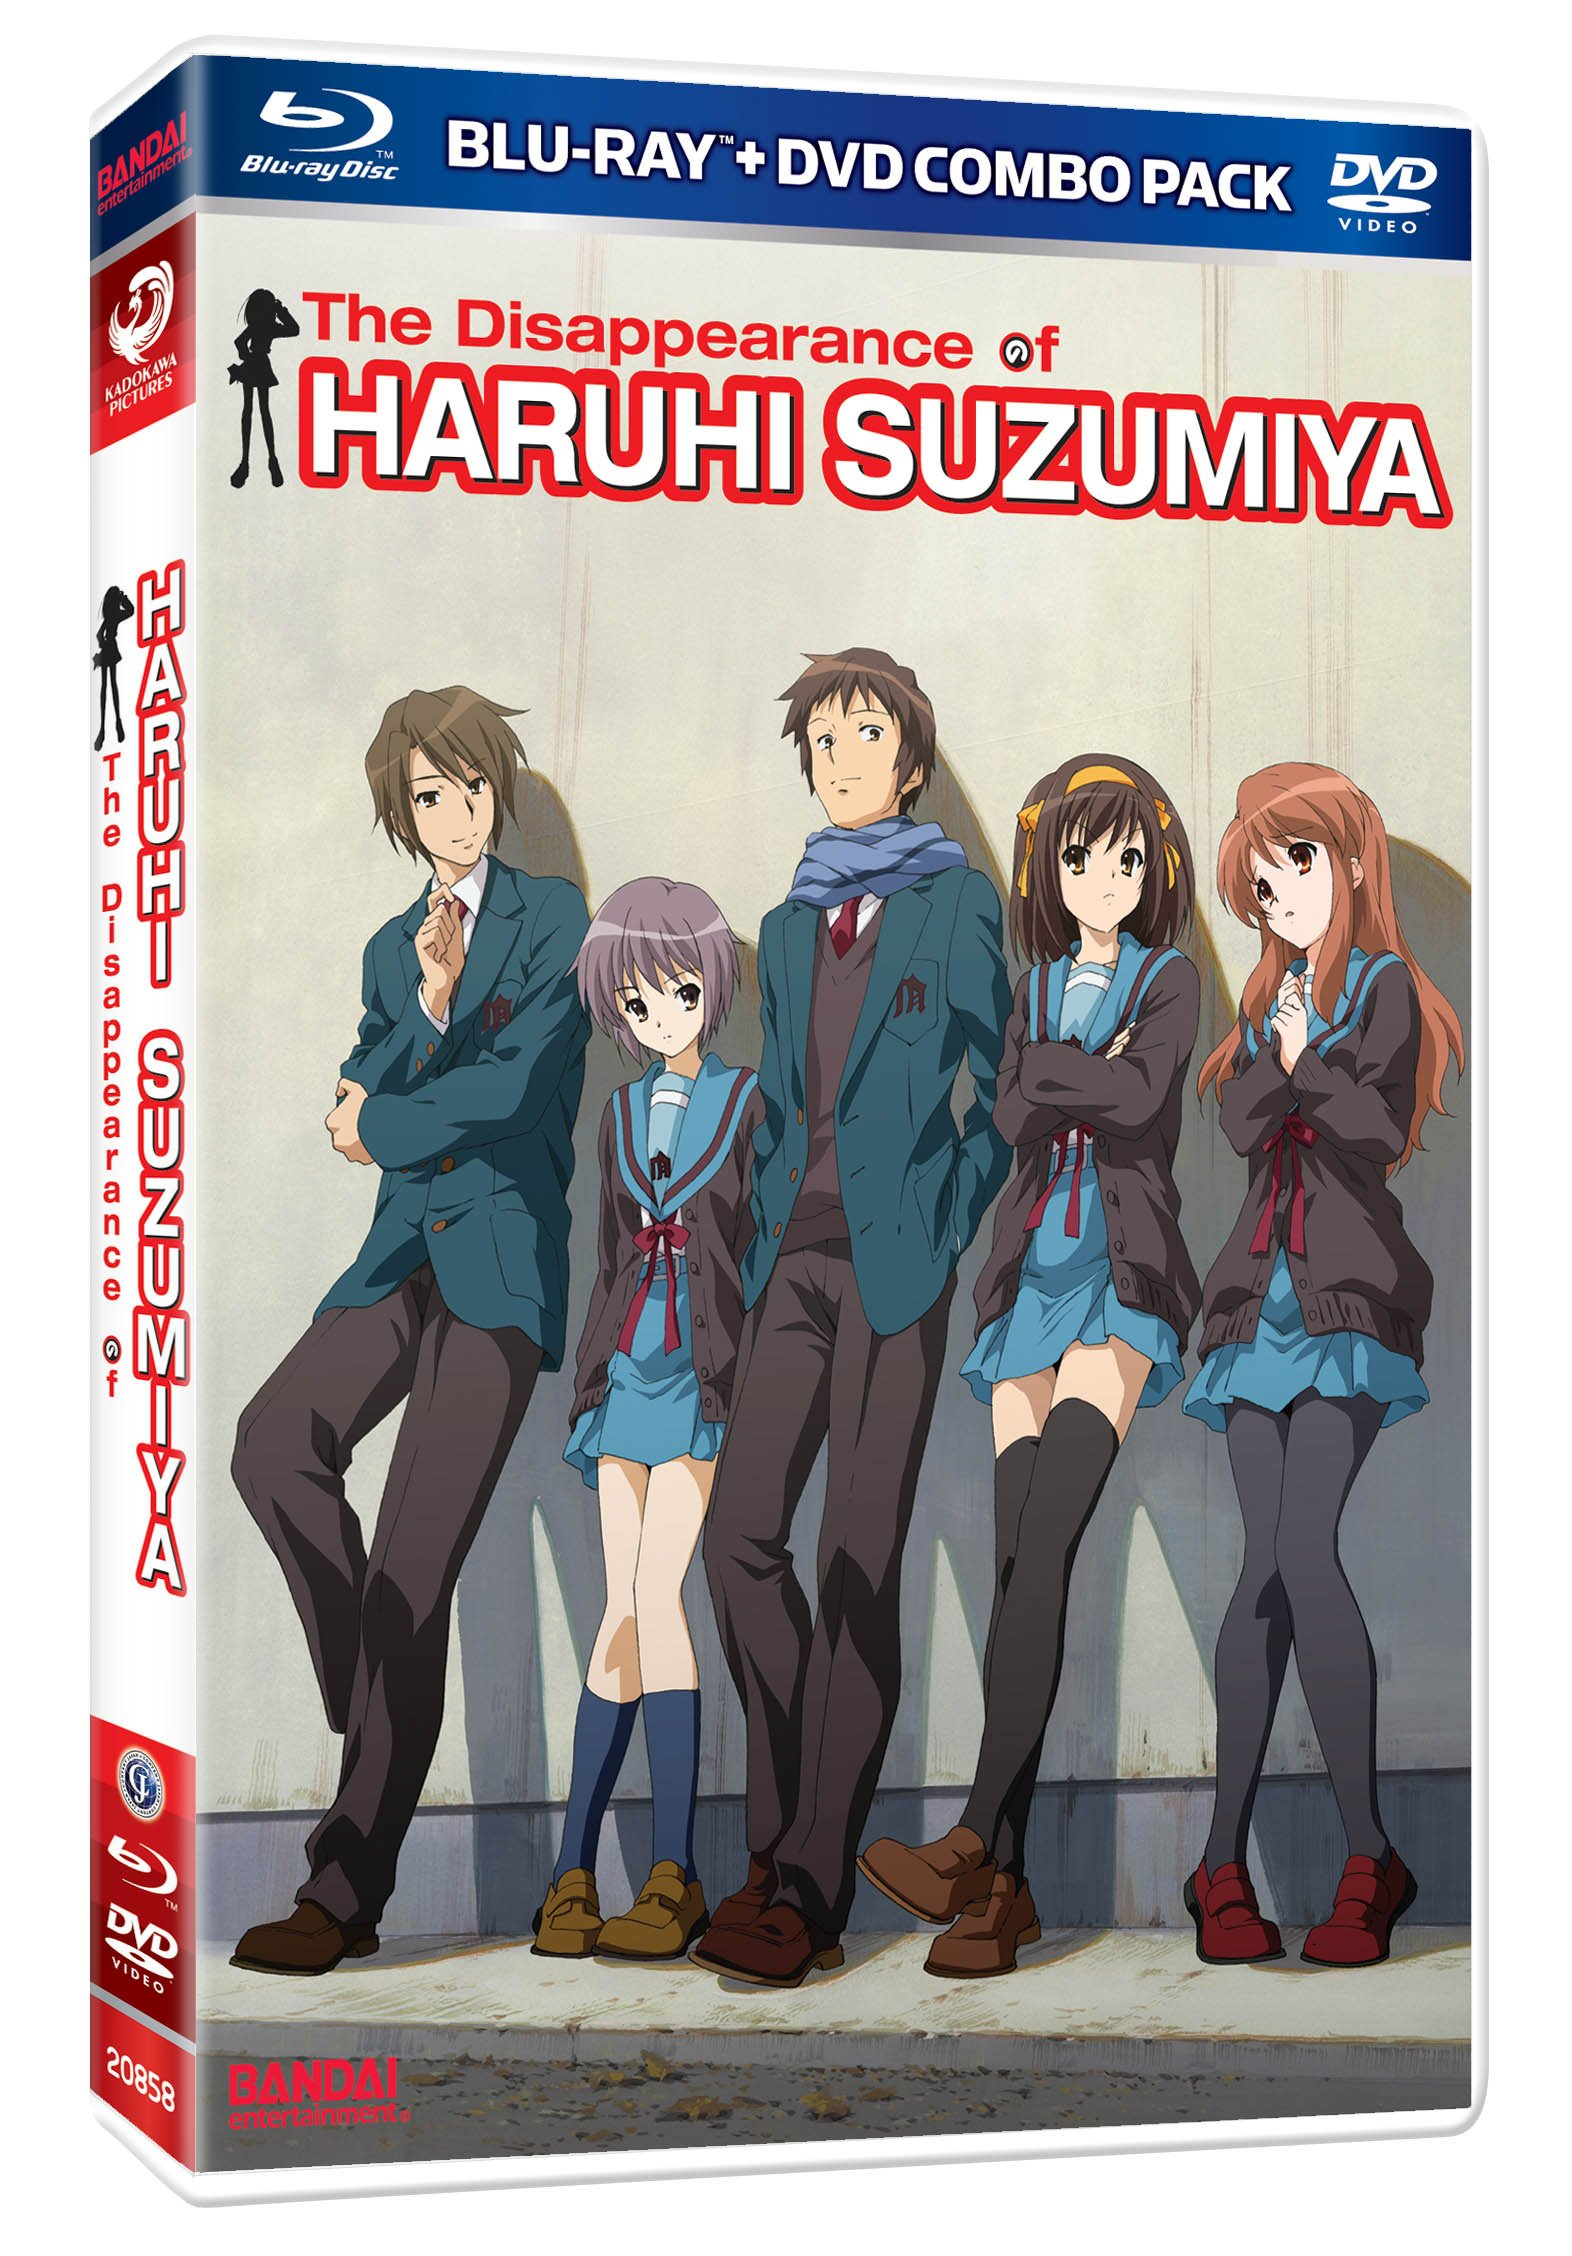 The Disappearance of Haruhi Suzumiya (Blu-ray/DVD Combo)